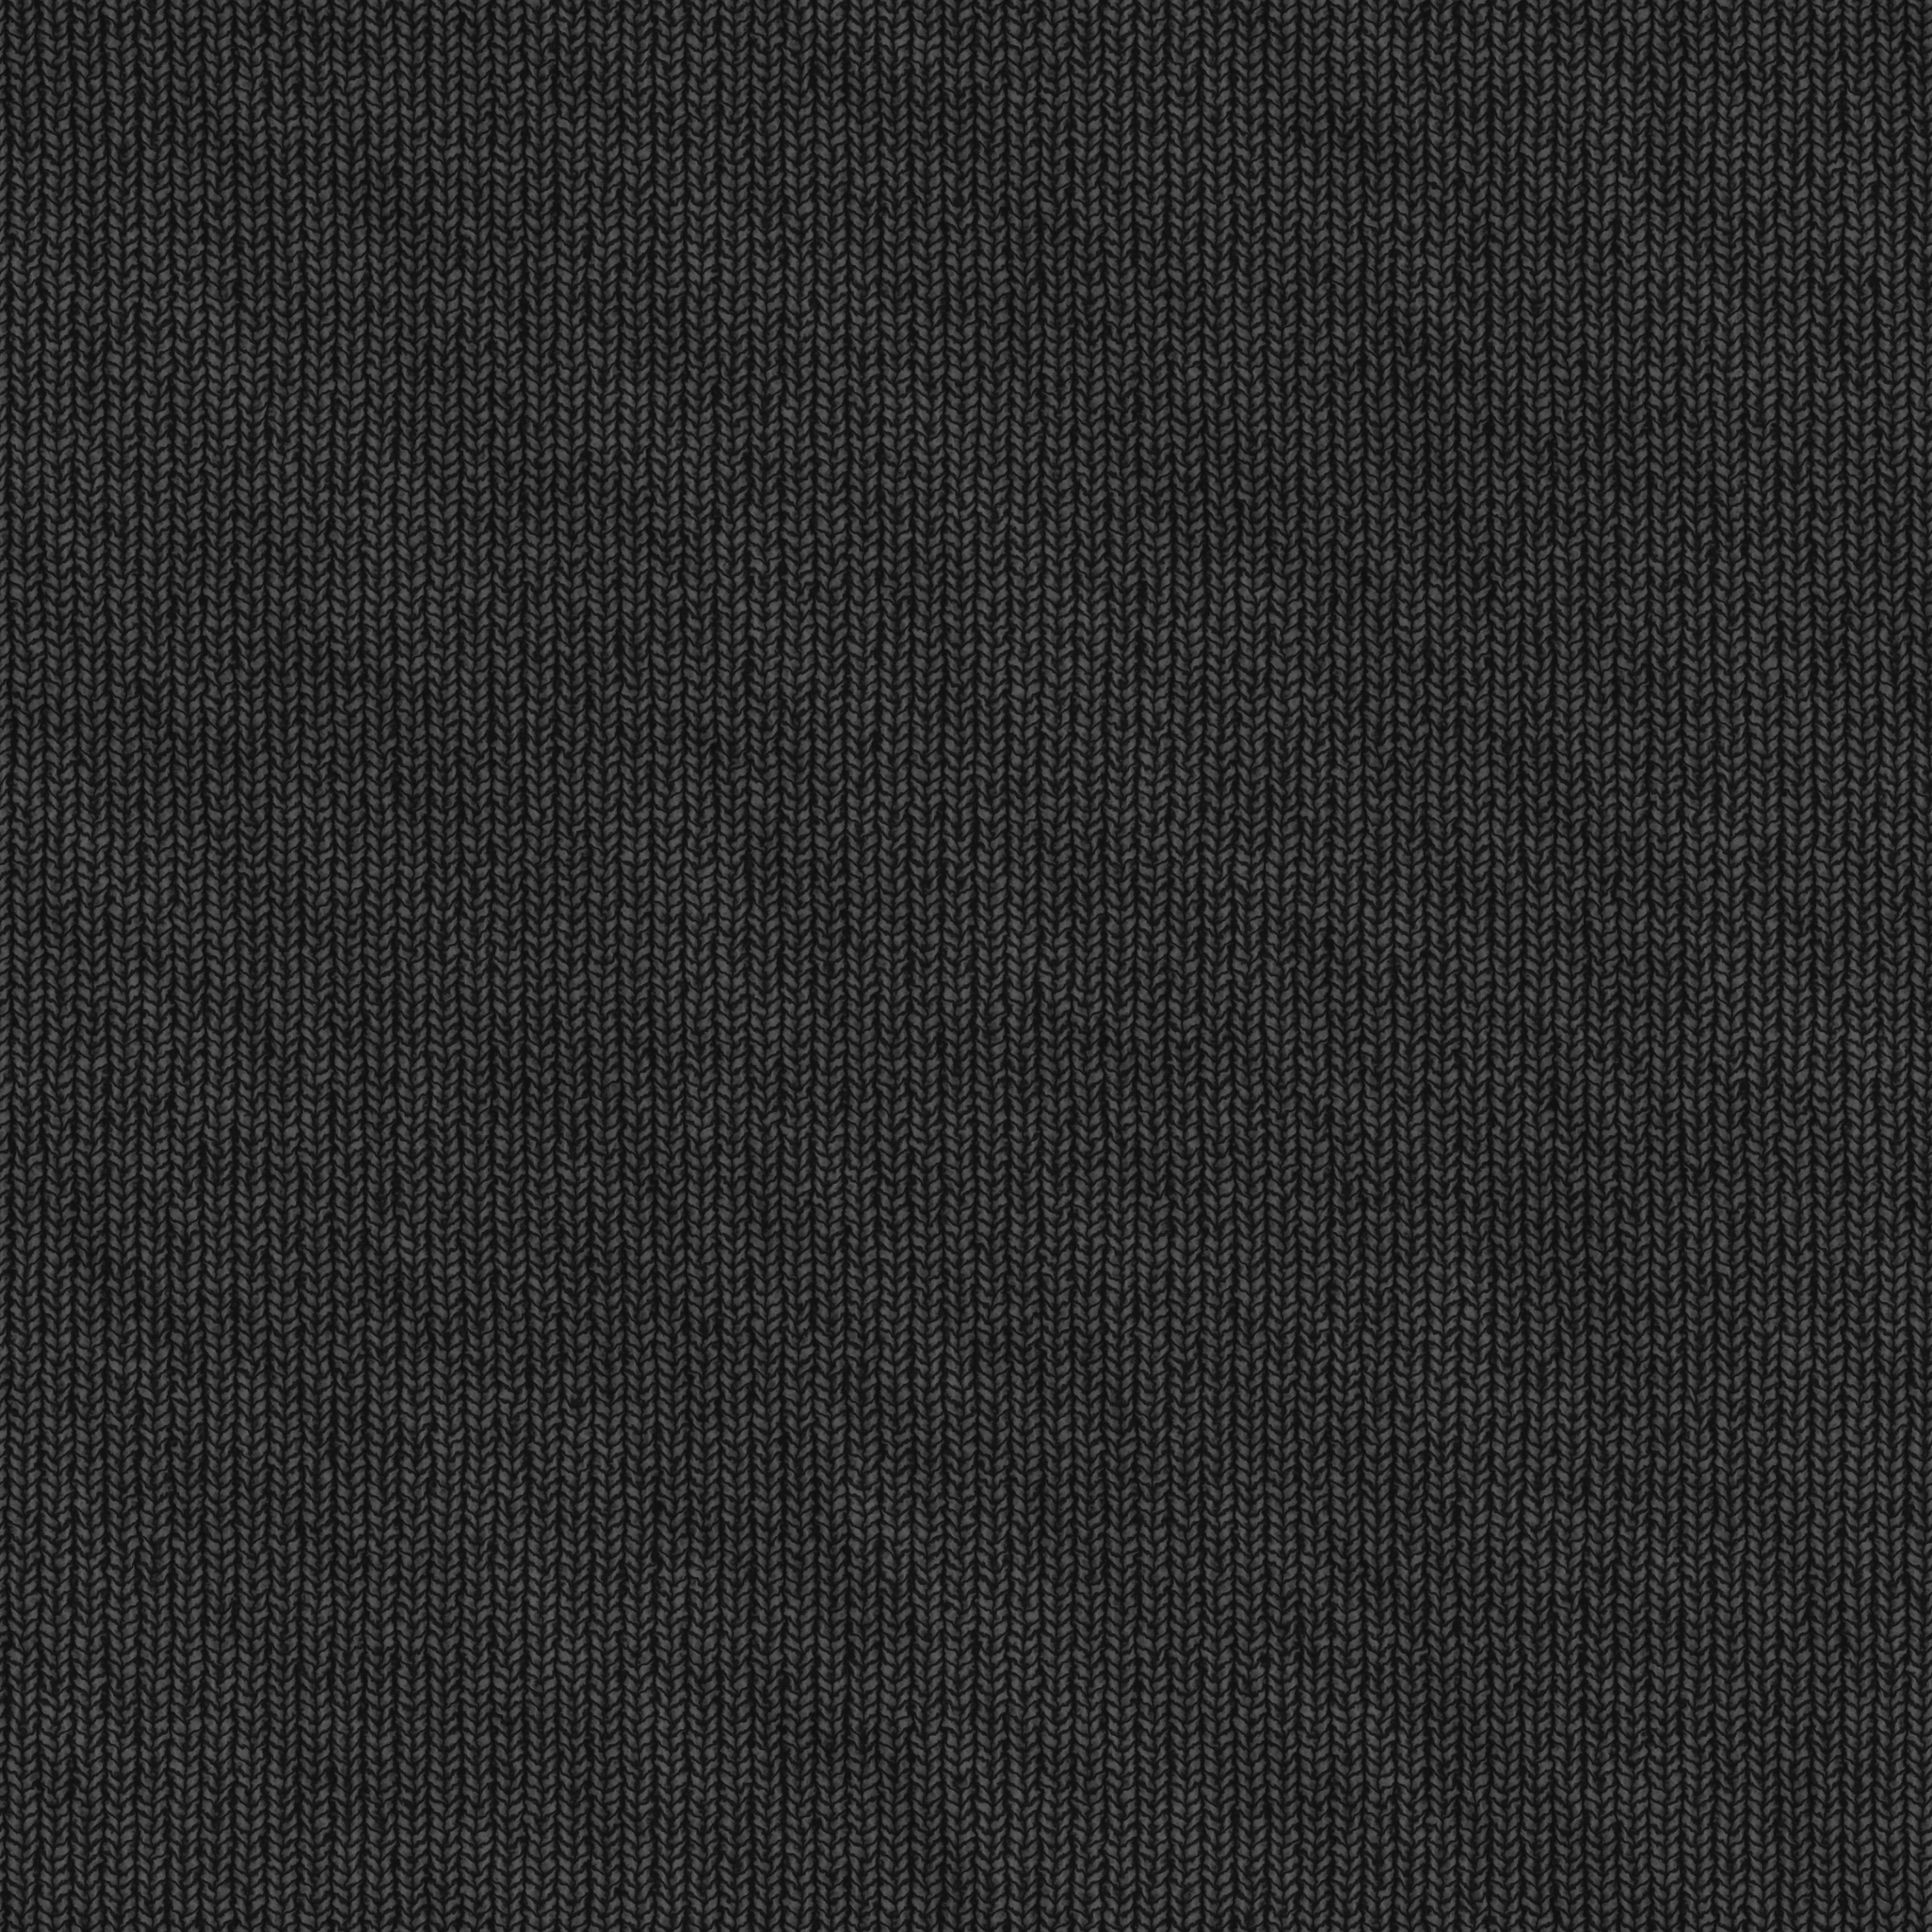 Black fabric texture seamless images for Black fabric